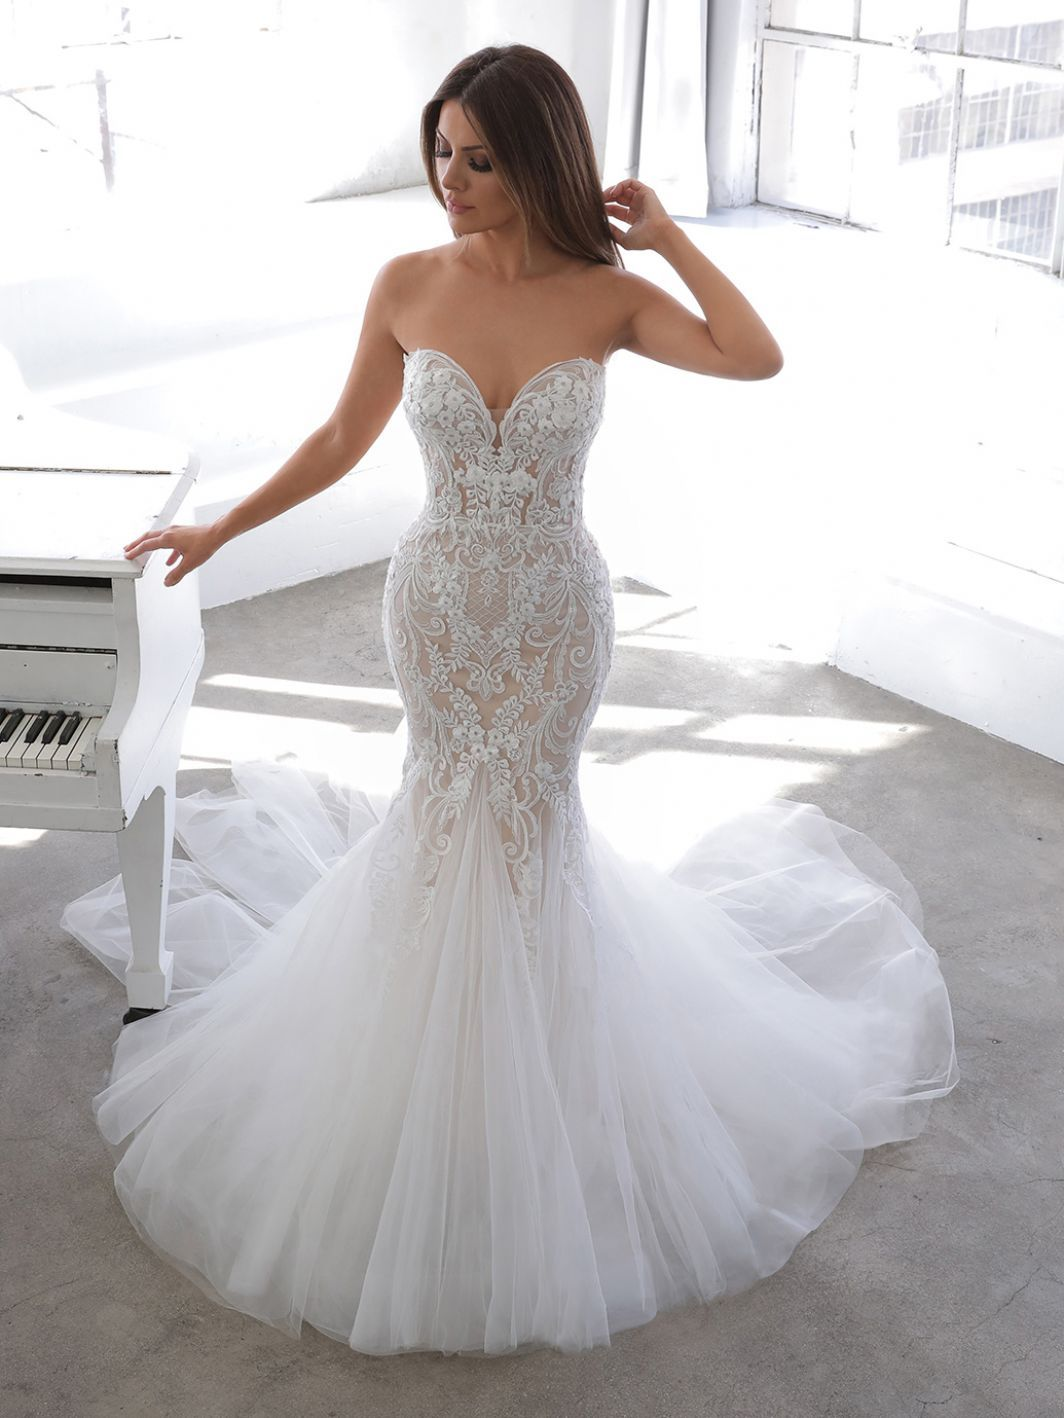 Newsletter Online Wedding Dress Fitted Lace Wedding Dress Wedding Dresses [ 1418 x 1064 Pixel ]